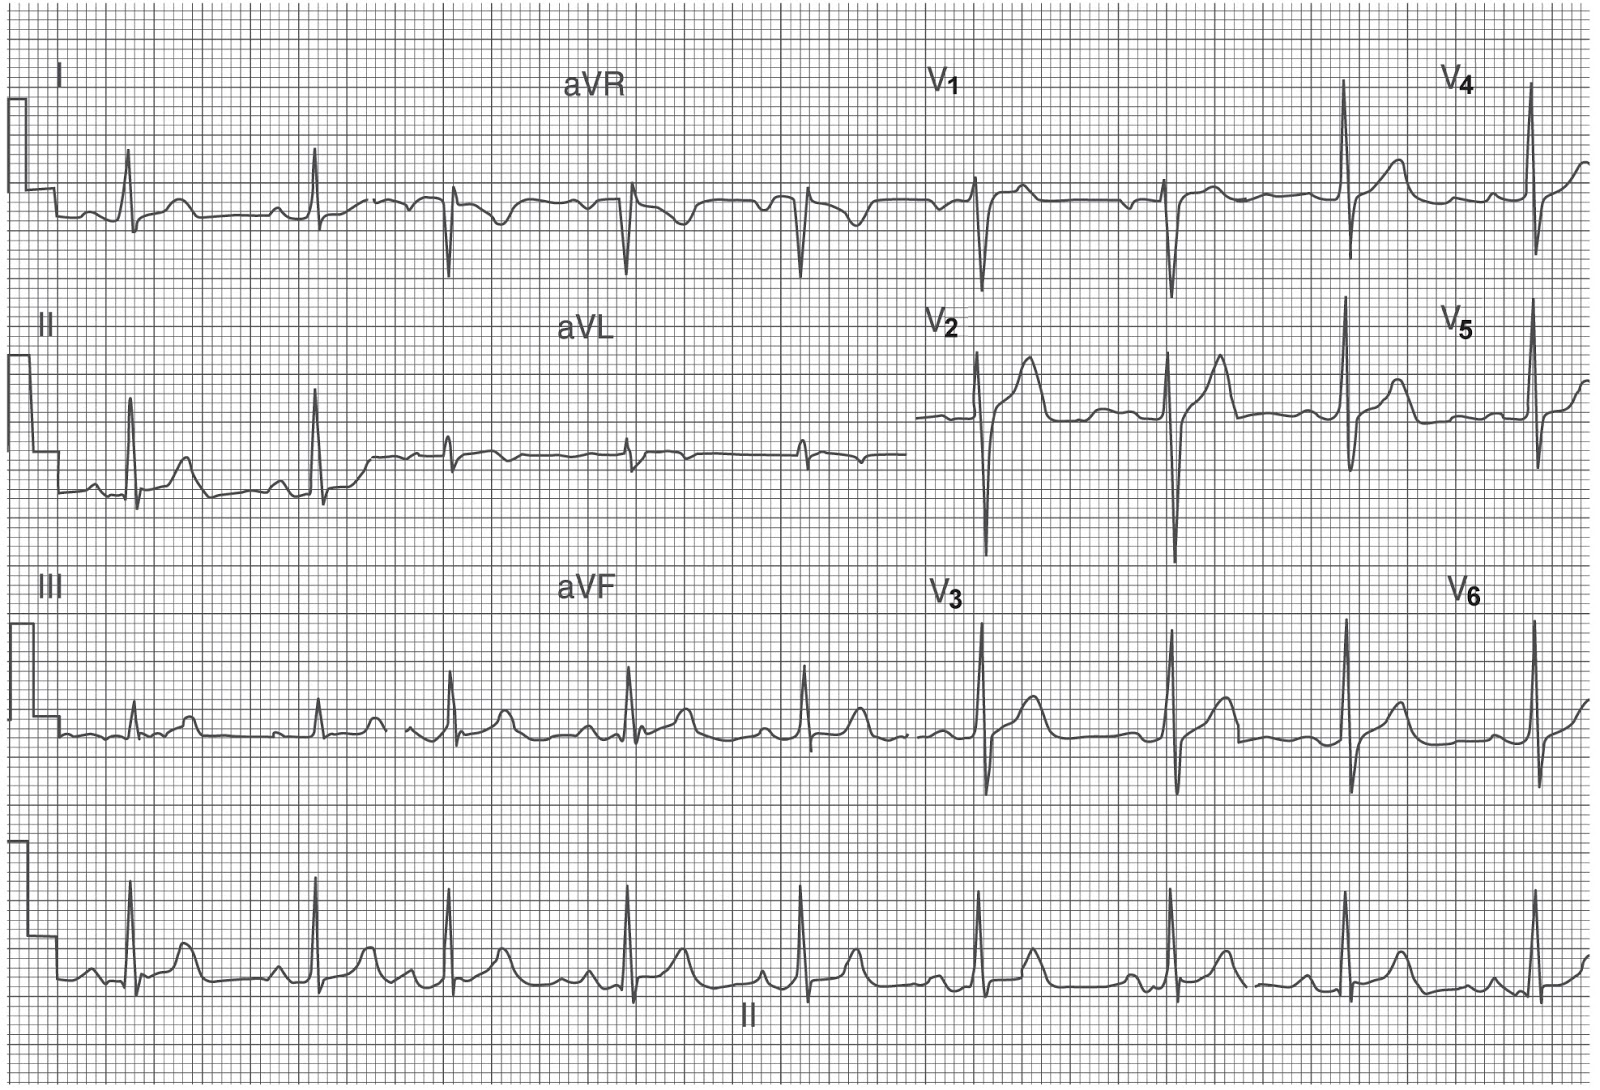 Study Medical Photos: Understanding A Normal ECG - Details about The Waves And Intervals.